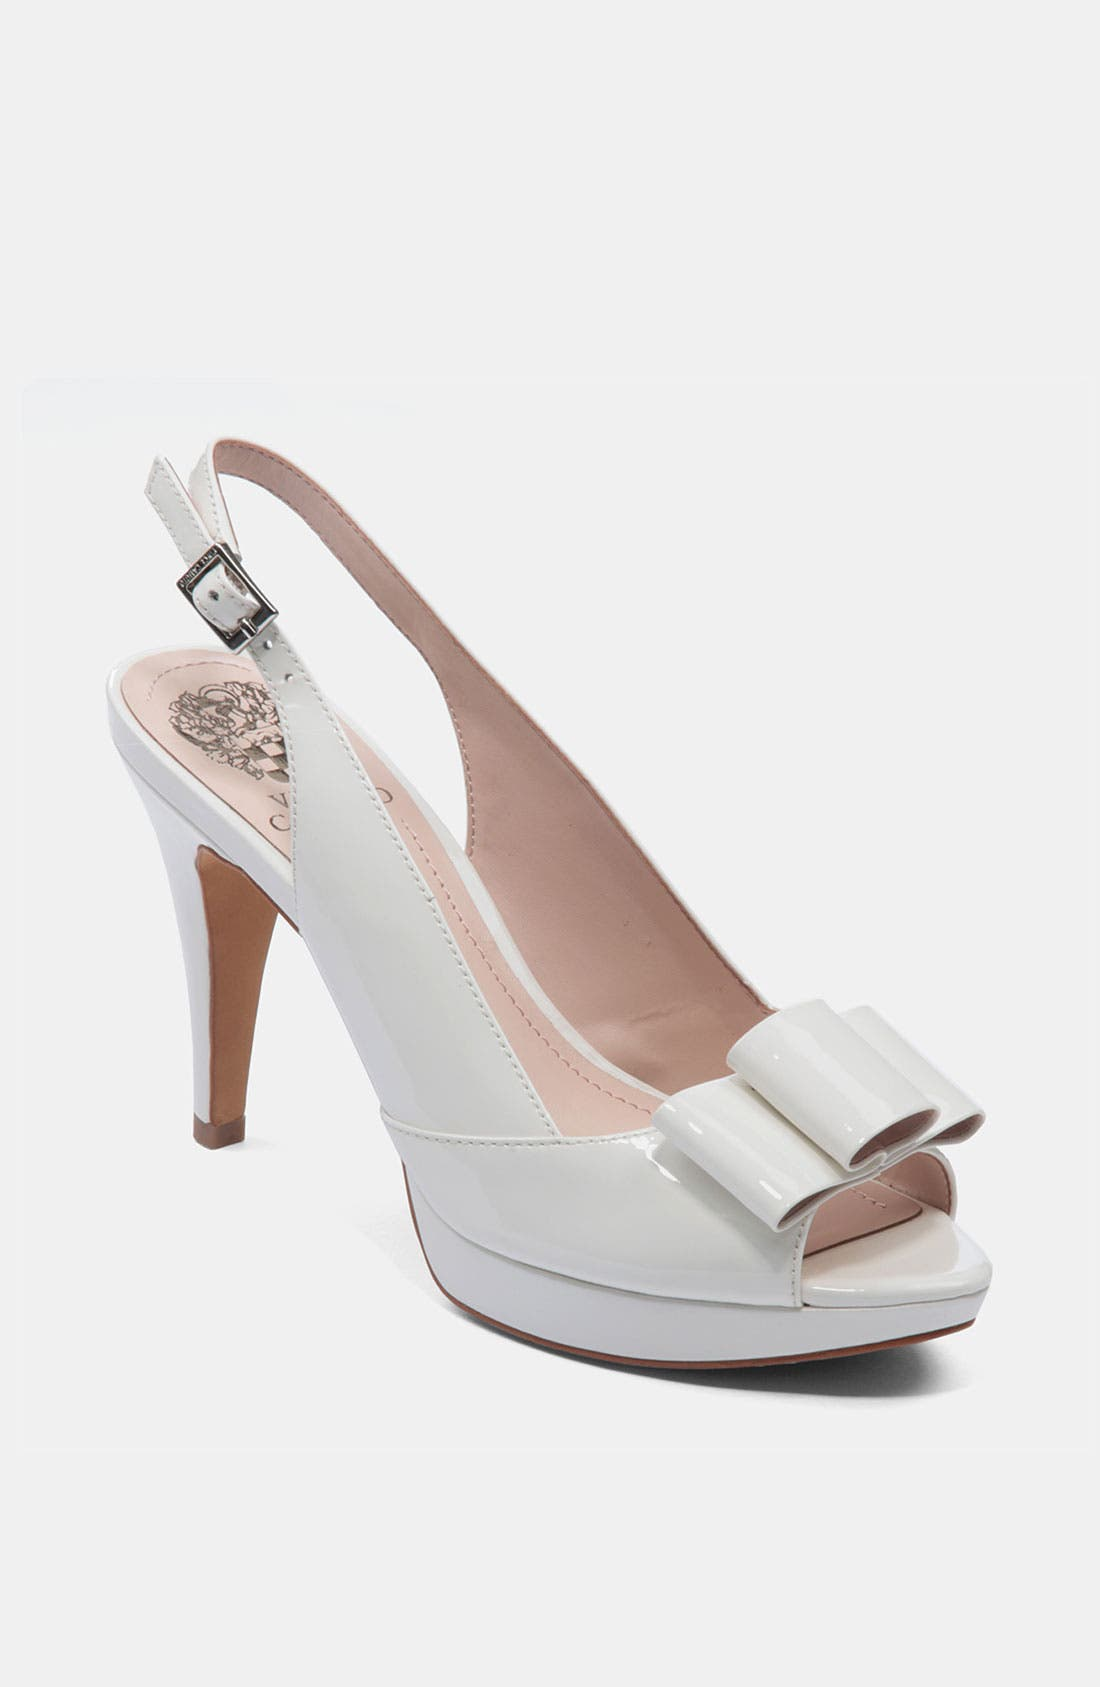 Alternate Image 1 Selected - Vince Camuto 'Ava' Pump